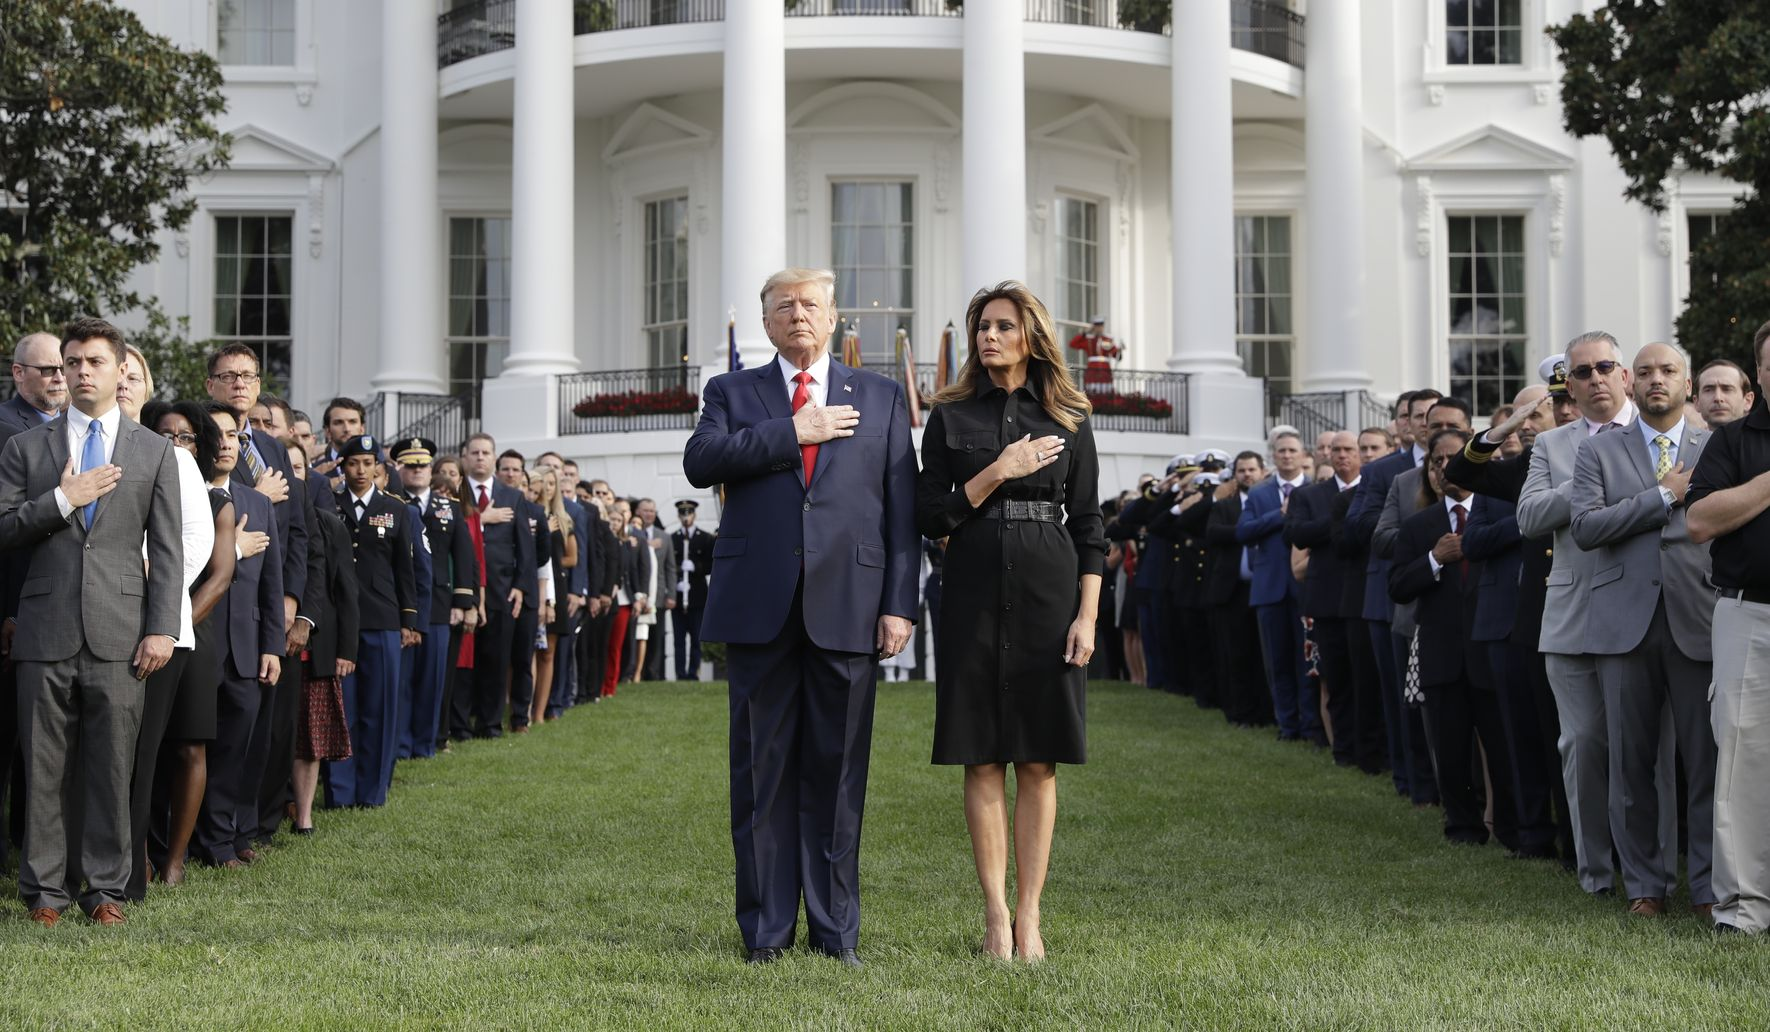 Trump, Congress observe moment of silence on 9/11 anniversary